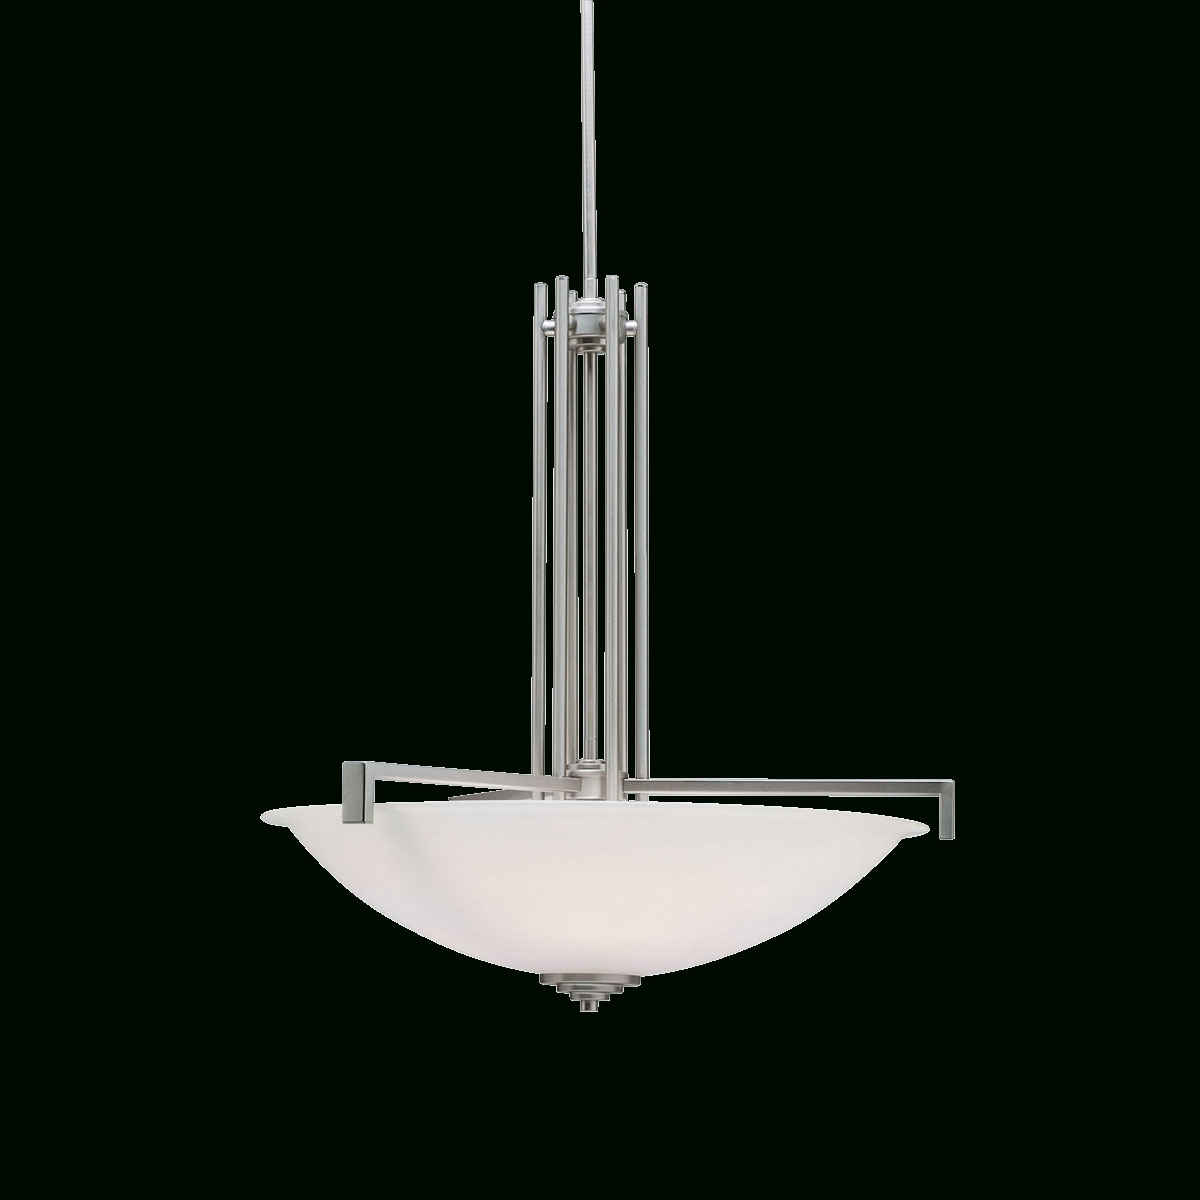 Contemporary 4 Light Inverted Pendant (3299Ni) Brushed Nickel with Inverted Pendant Lighting (Image 4 of 15)